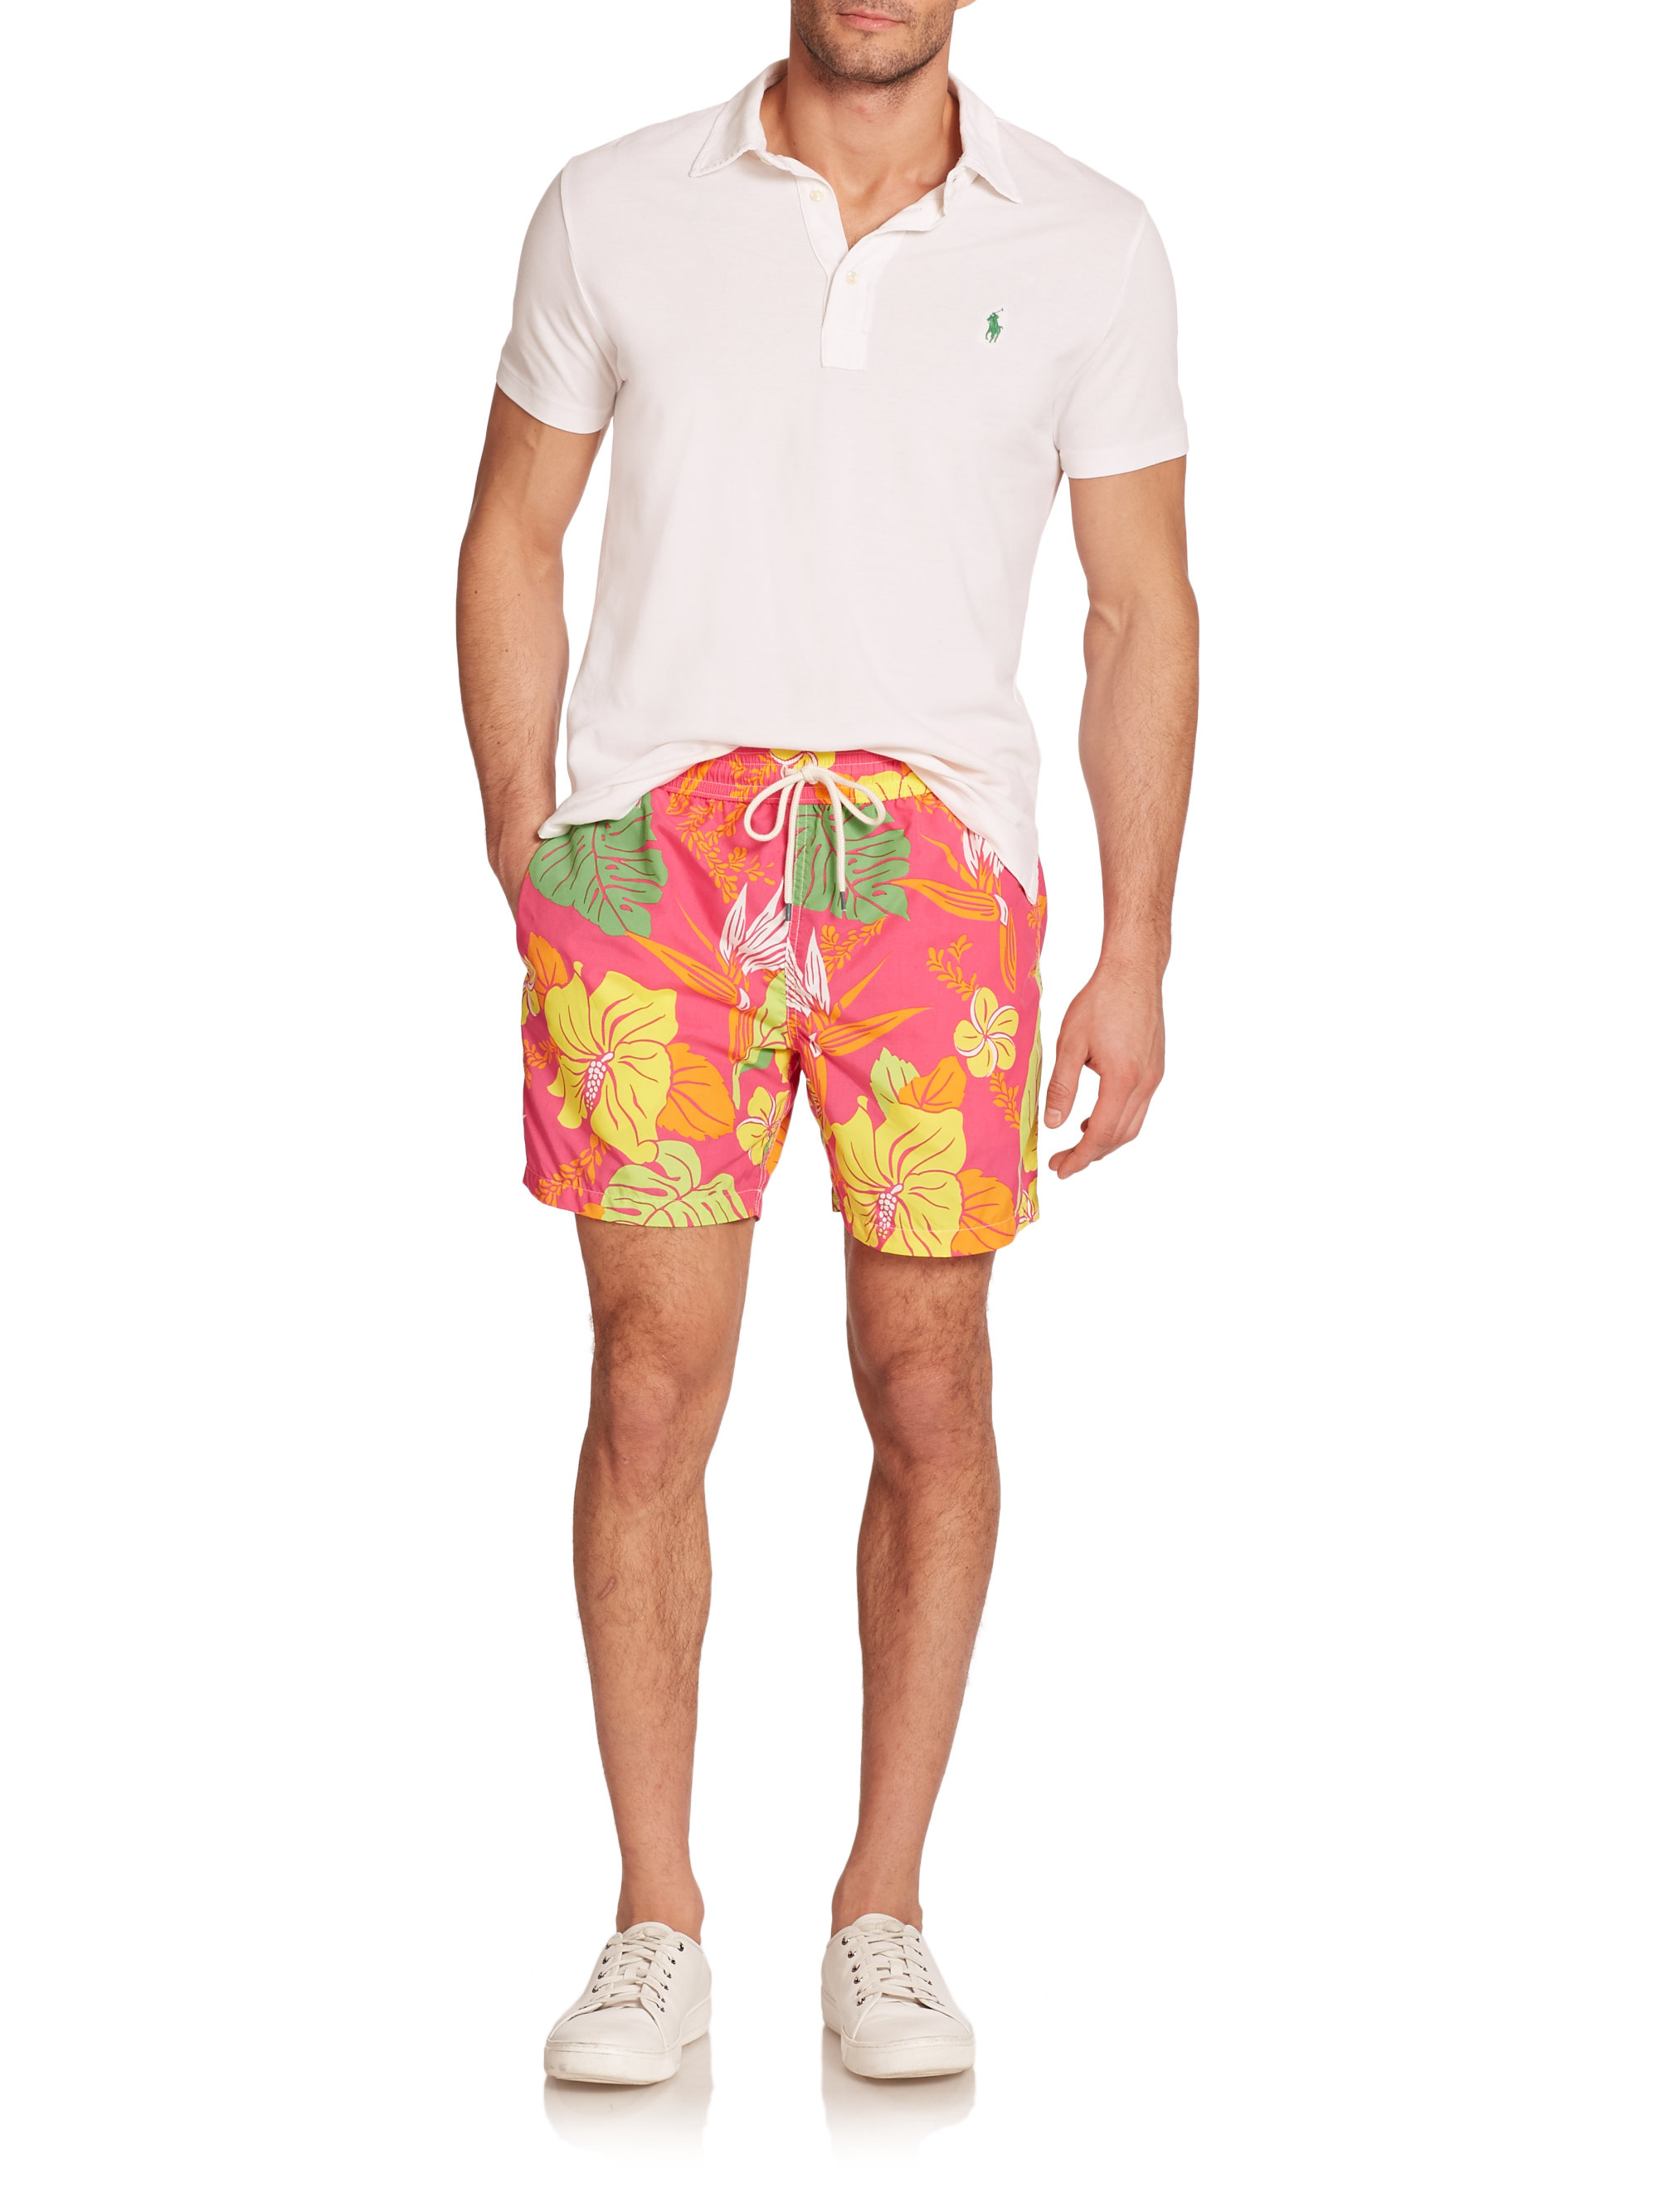 05d4f5e04a ... switzerland lyst polo ralph lauren traveler floral print swim trunks  for men eb1c9 adade